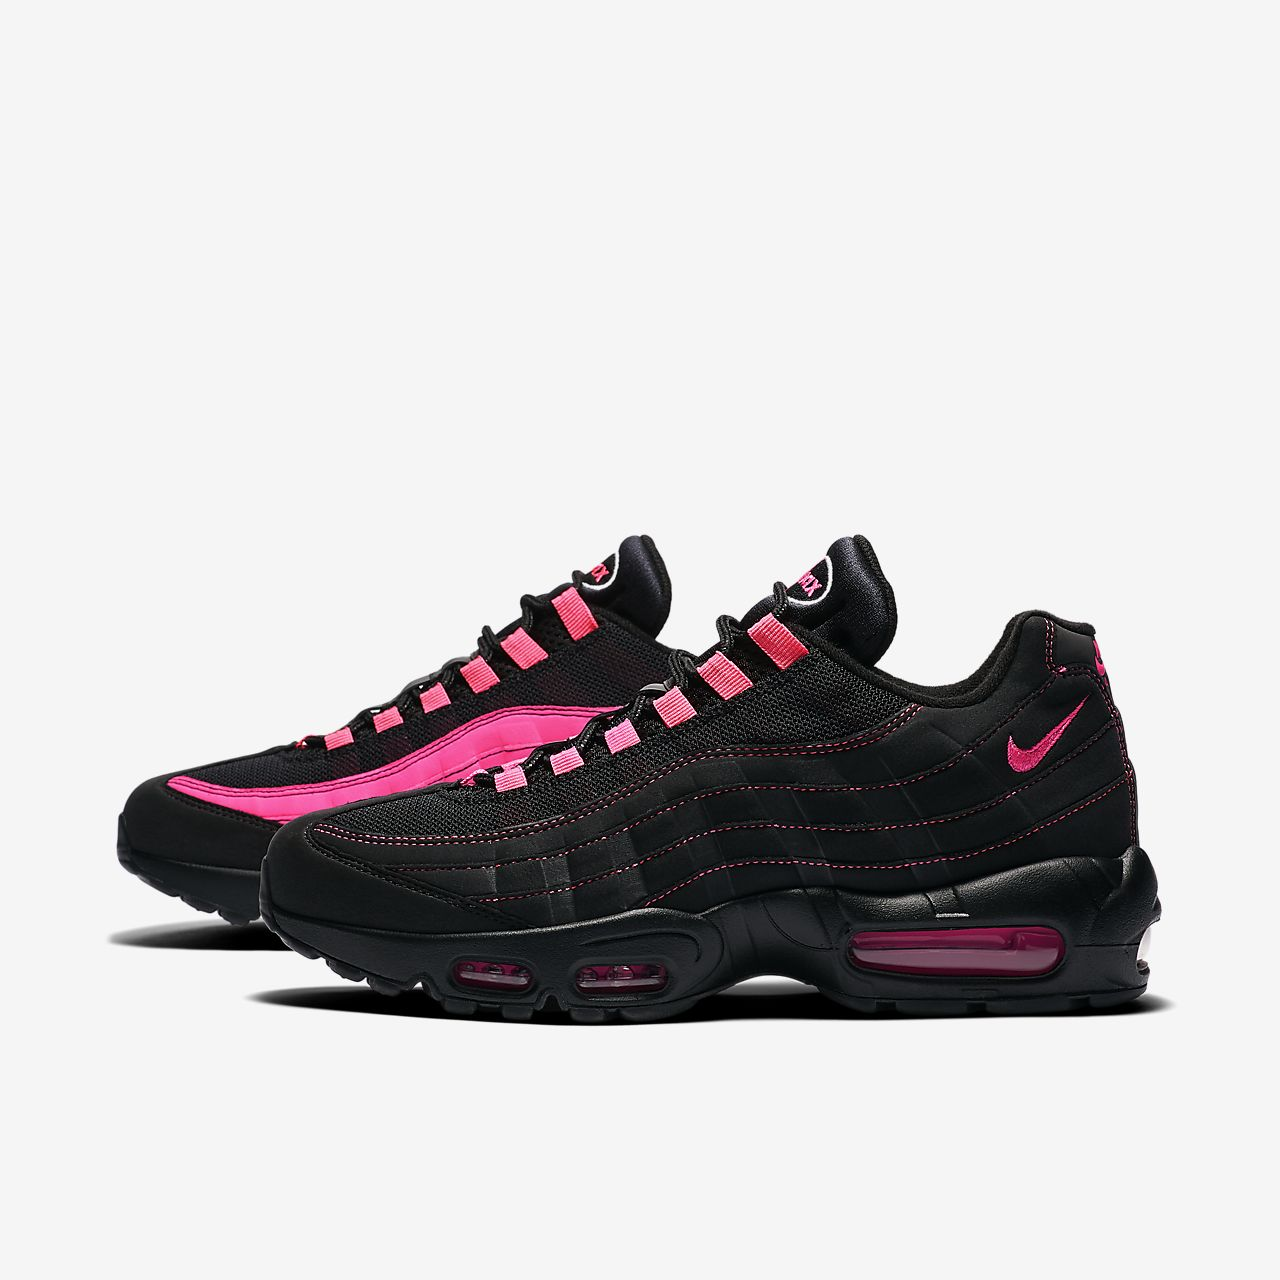 nike air max 95 og pink buy clothes